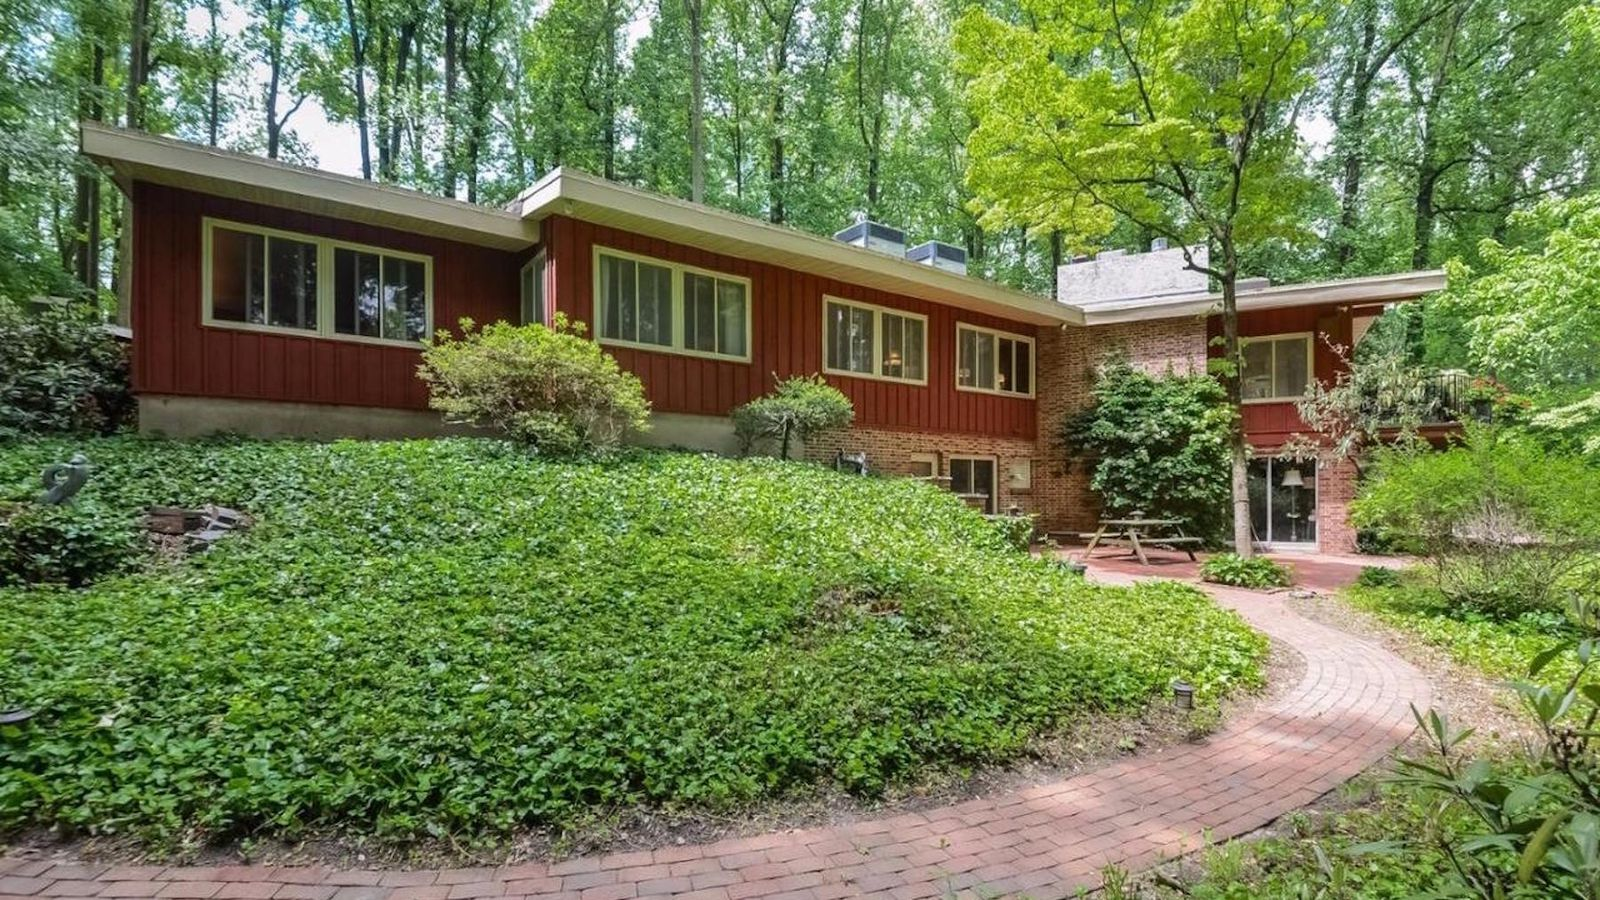 5 frank lloyd wright inspired homes for sale around philly - Frank lloyd wright homes for sale ...